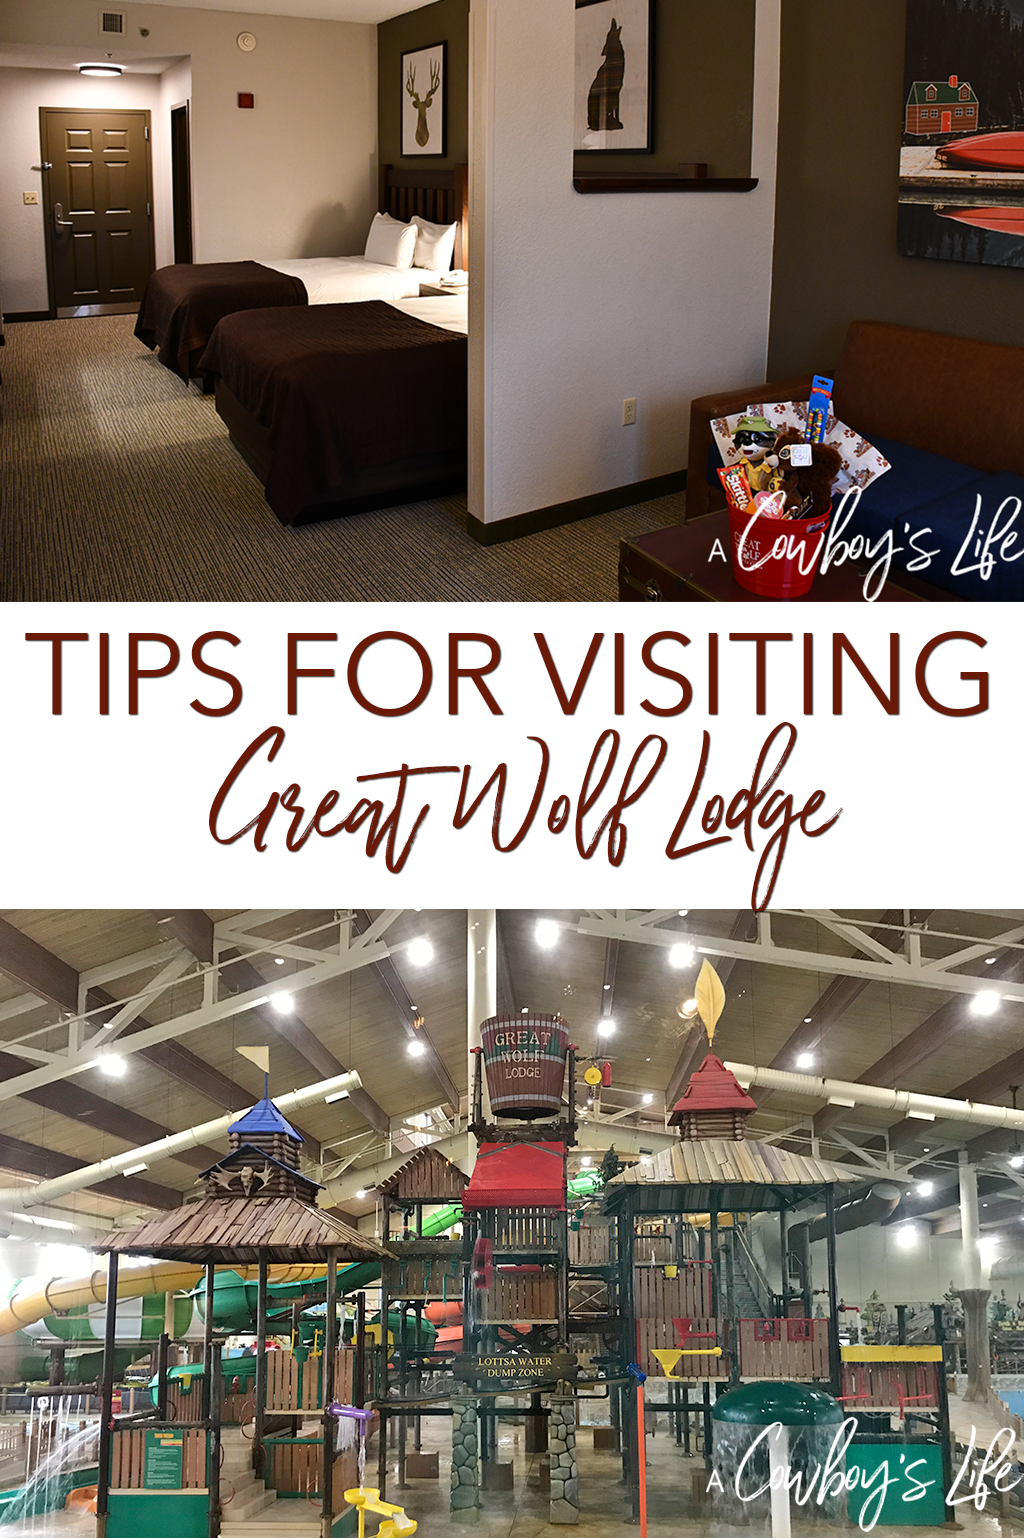 The Ultimate guide to Great Wolf Lodge | Great Wolf Lodge | Family Vacation | Family Waterpark | Great Wolf Lodge Grapevine | Great Wolf Lodge Texas #greatwolflodge #familyvacation